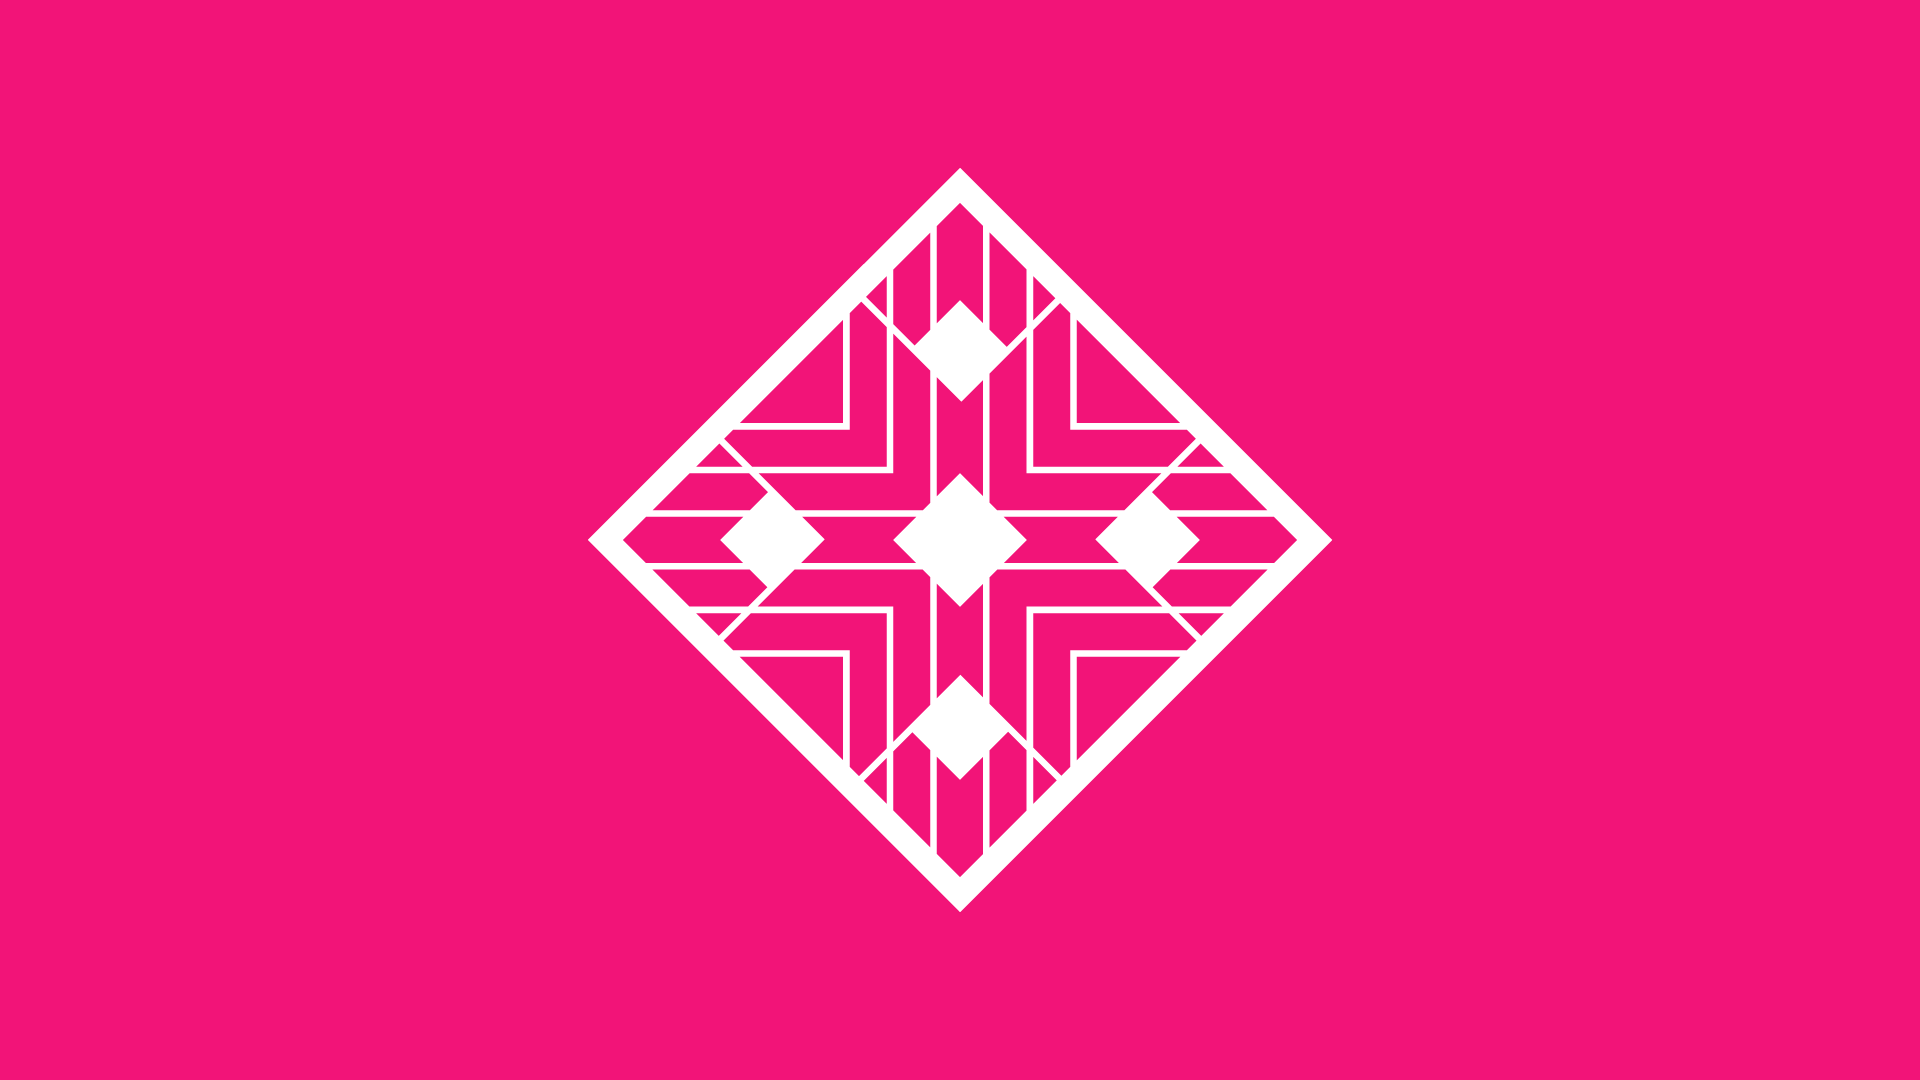 GLD-White-pink-01.png